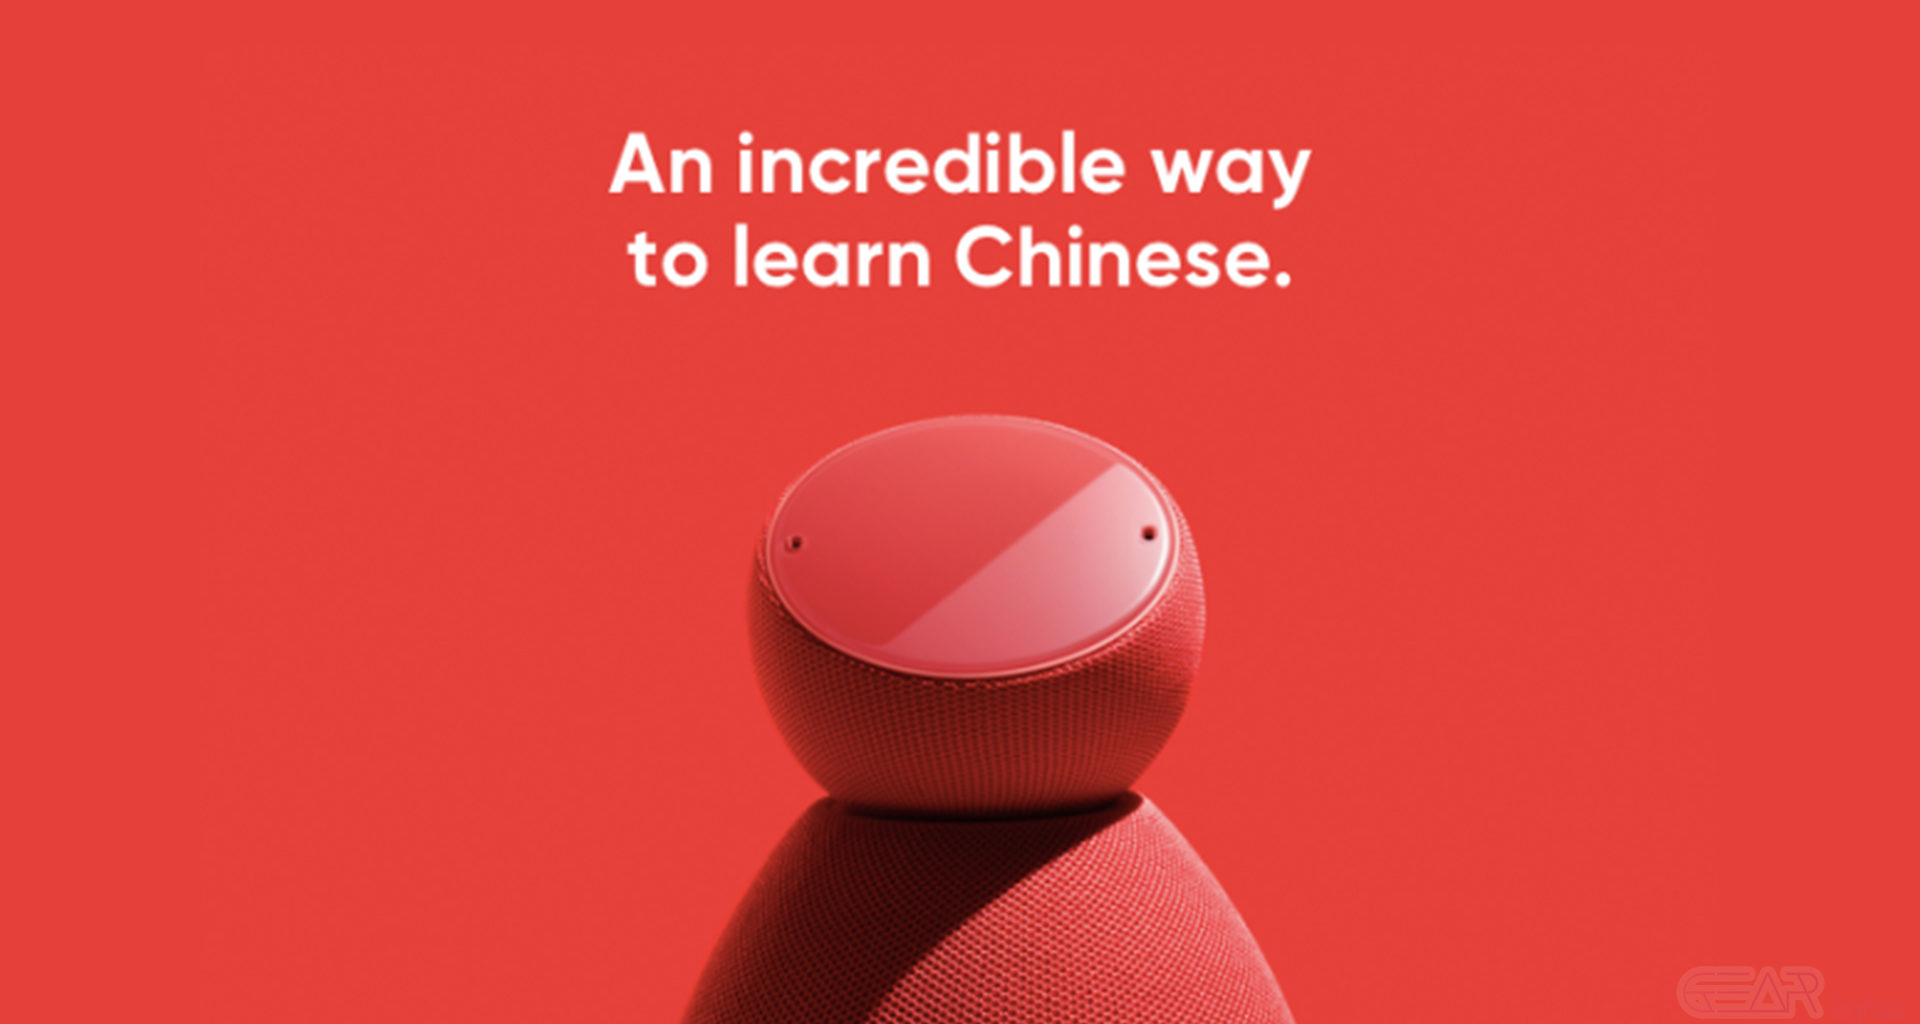 Lily Smart Speaker powered by AI that can teach Chinese faster!